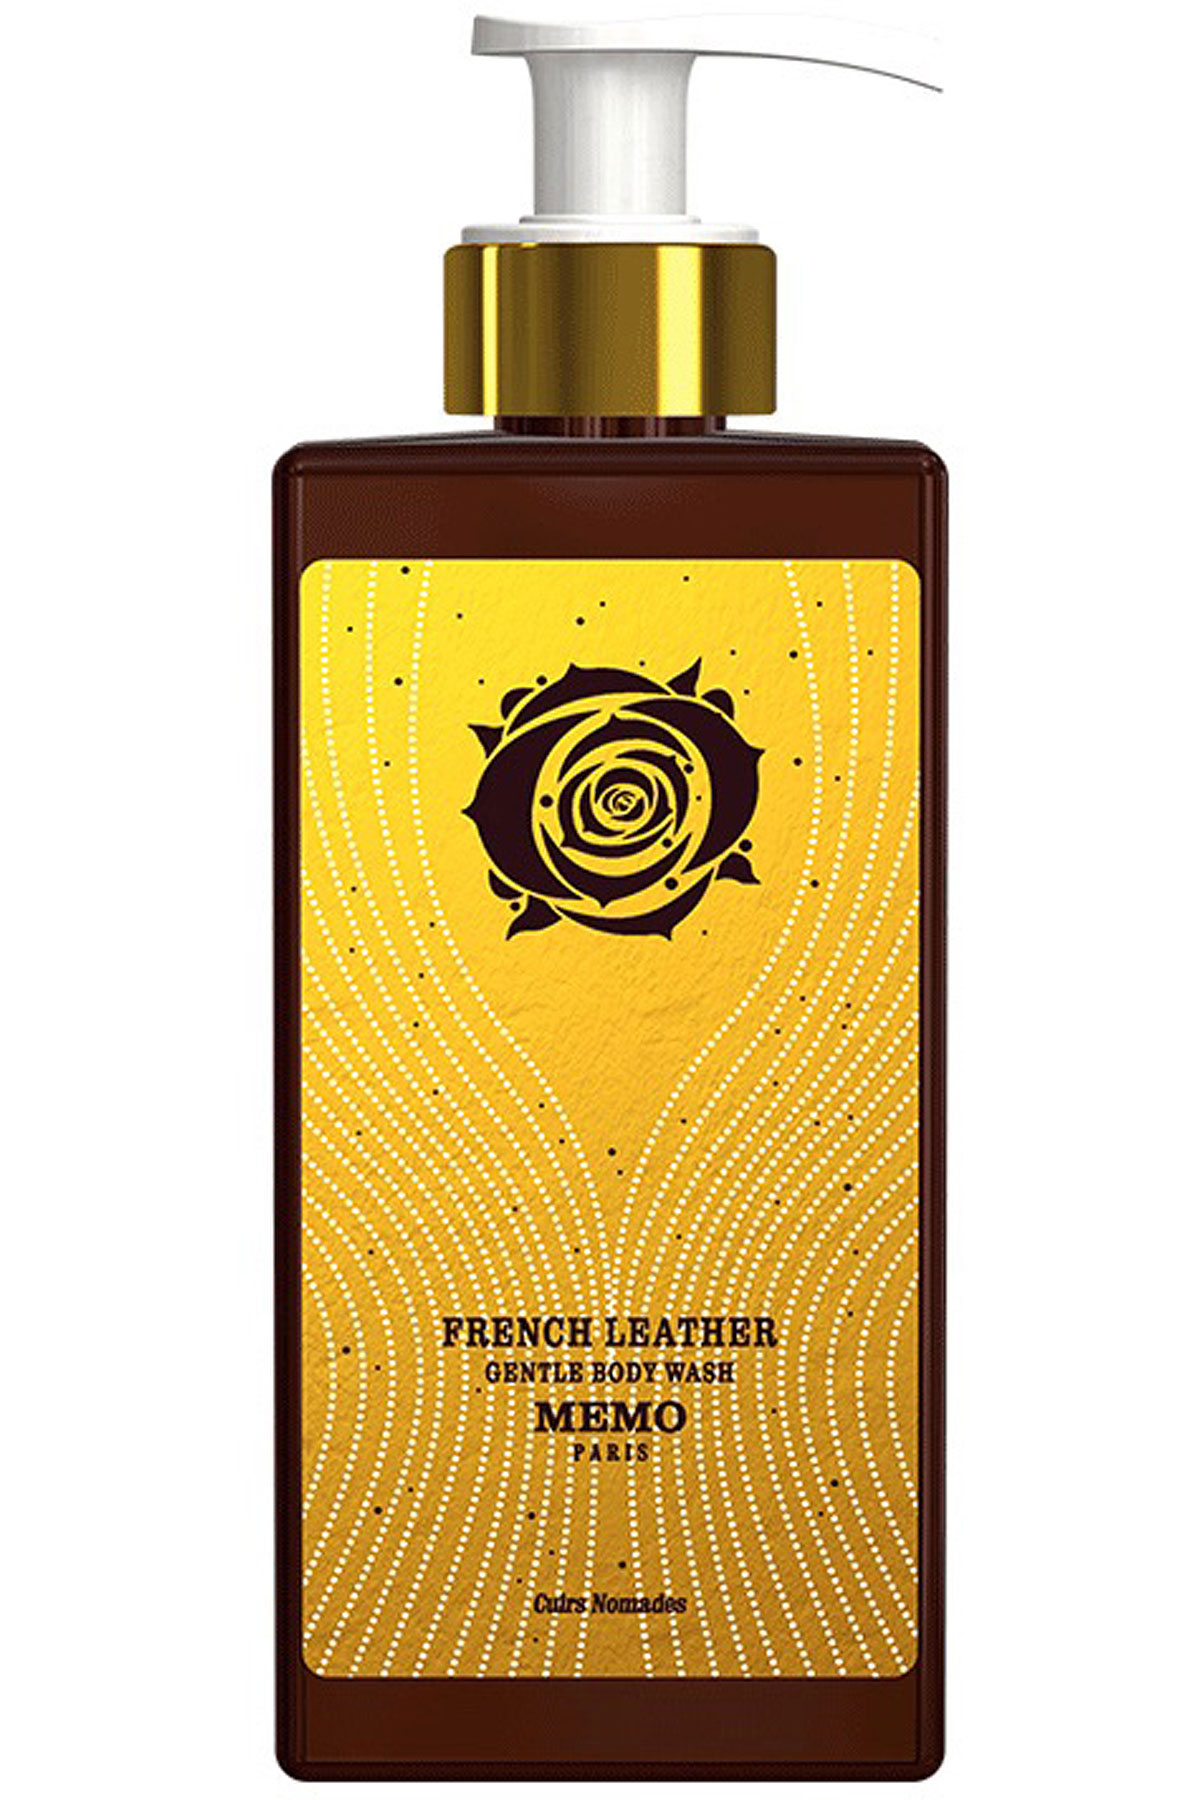 Memo Paris Beauty for Women, French Leather - Gentle Body Wash - 250 Ml, 2019, 250 ml